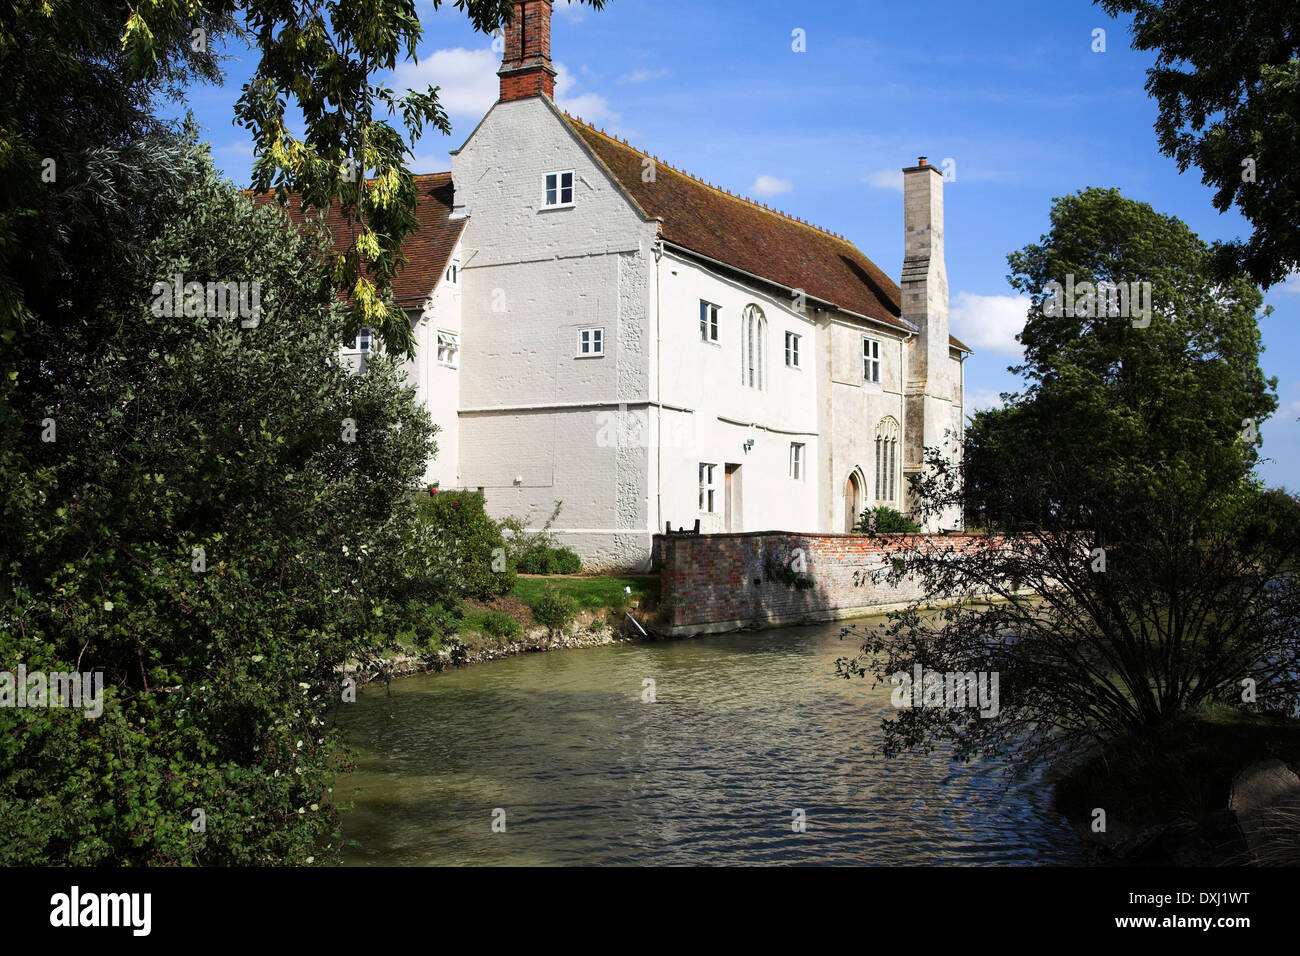 Saint Peter's brewery and restaurant in old moated farmhouse, St Peter´s Hall, St Peter South Elmham, Bungay, Suffolk, England - Stock Image